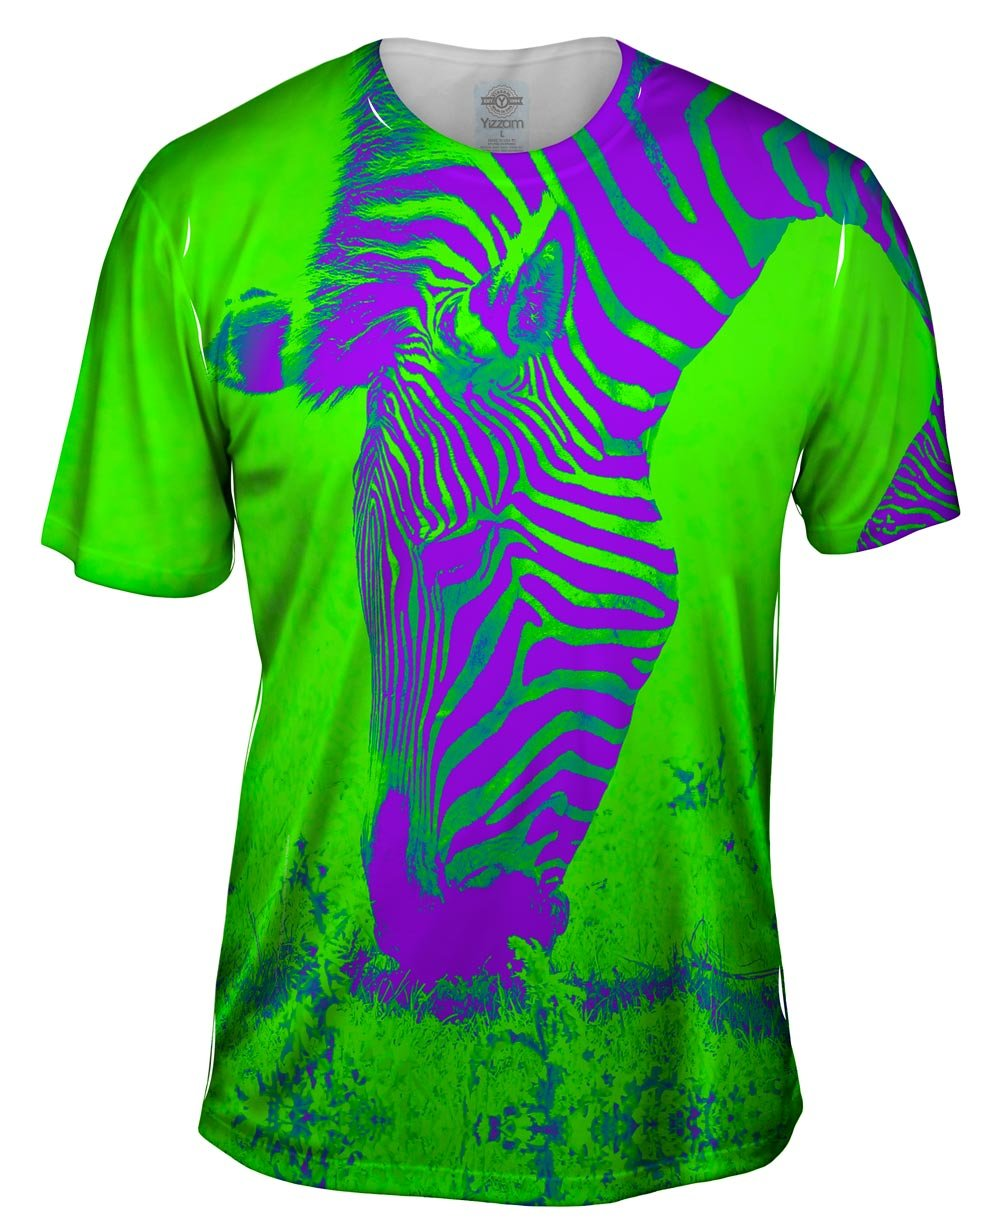 Neon Purple Green Zebra -Tagless- Mens Shirt S - Small, Medium, Large, XL, 2X, 3X, 4X